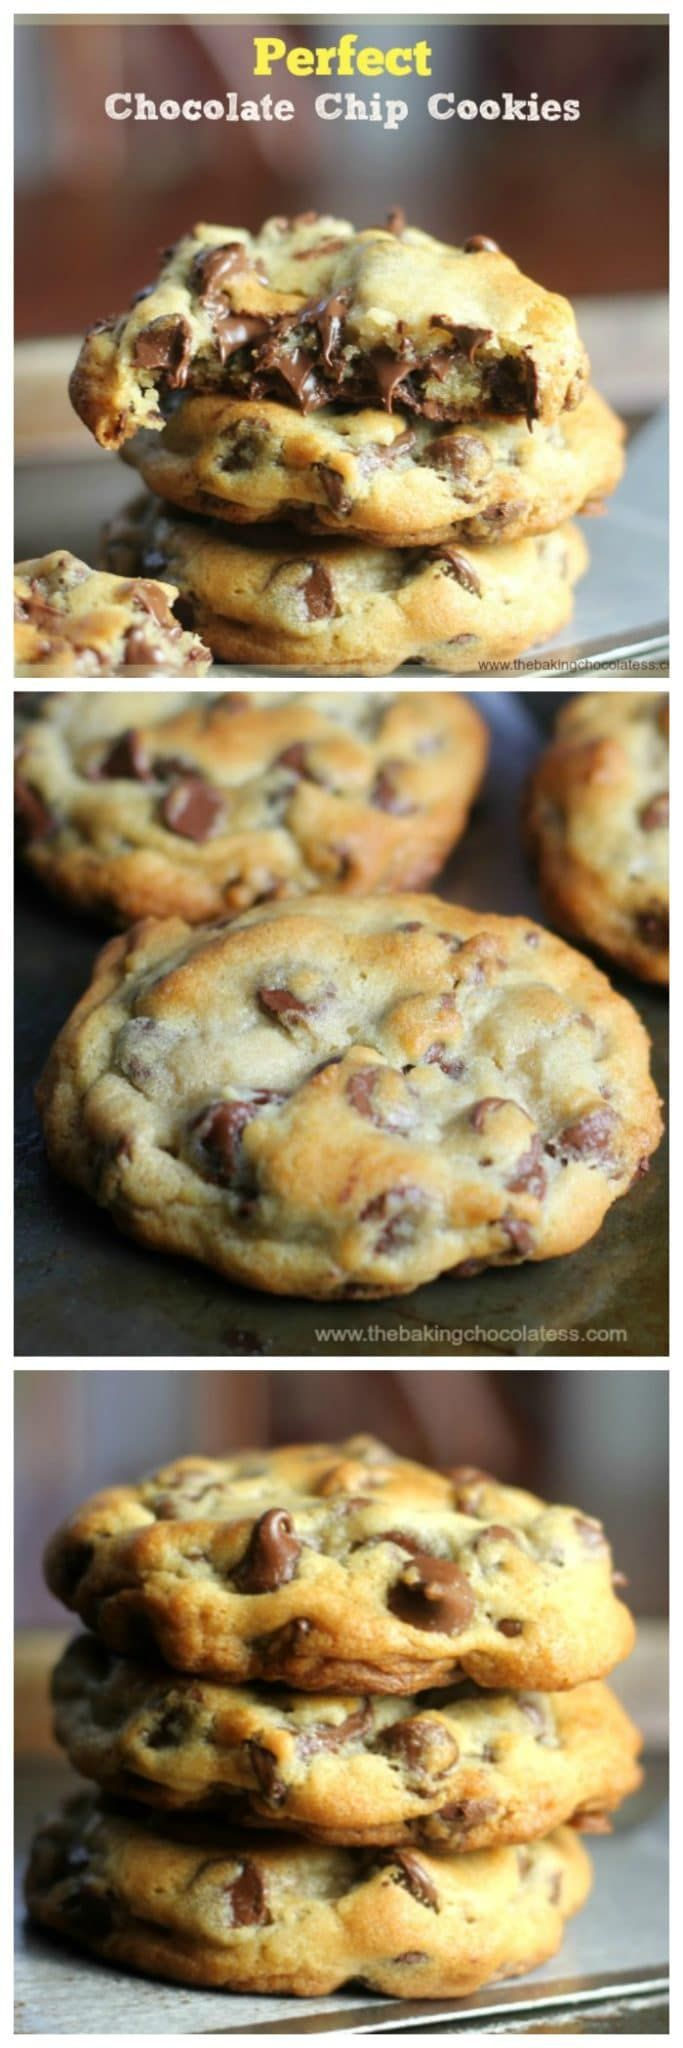 These 'perfect' chocolate chip cookies are completely buttery, chewy, thick and chocked full of rich, semi-sweet chocolate chips.